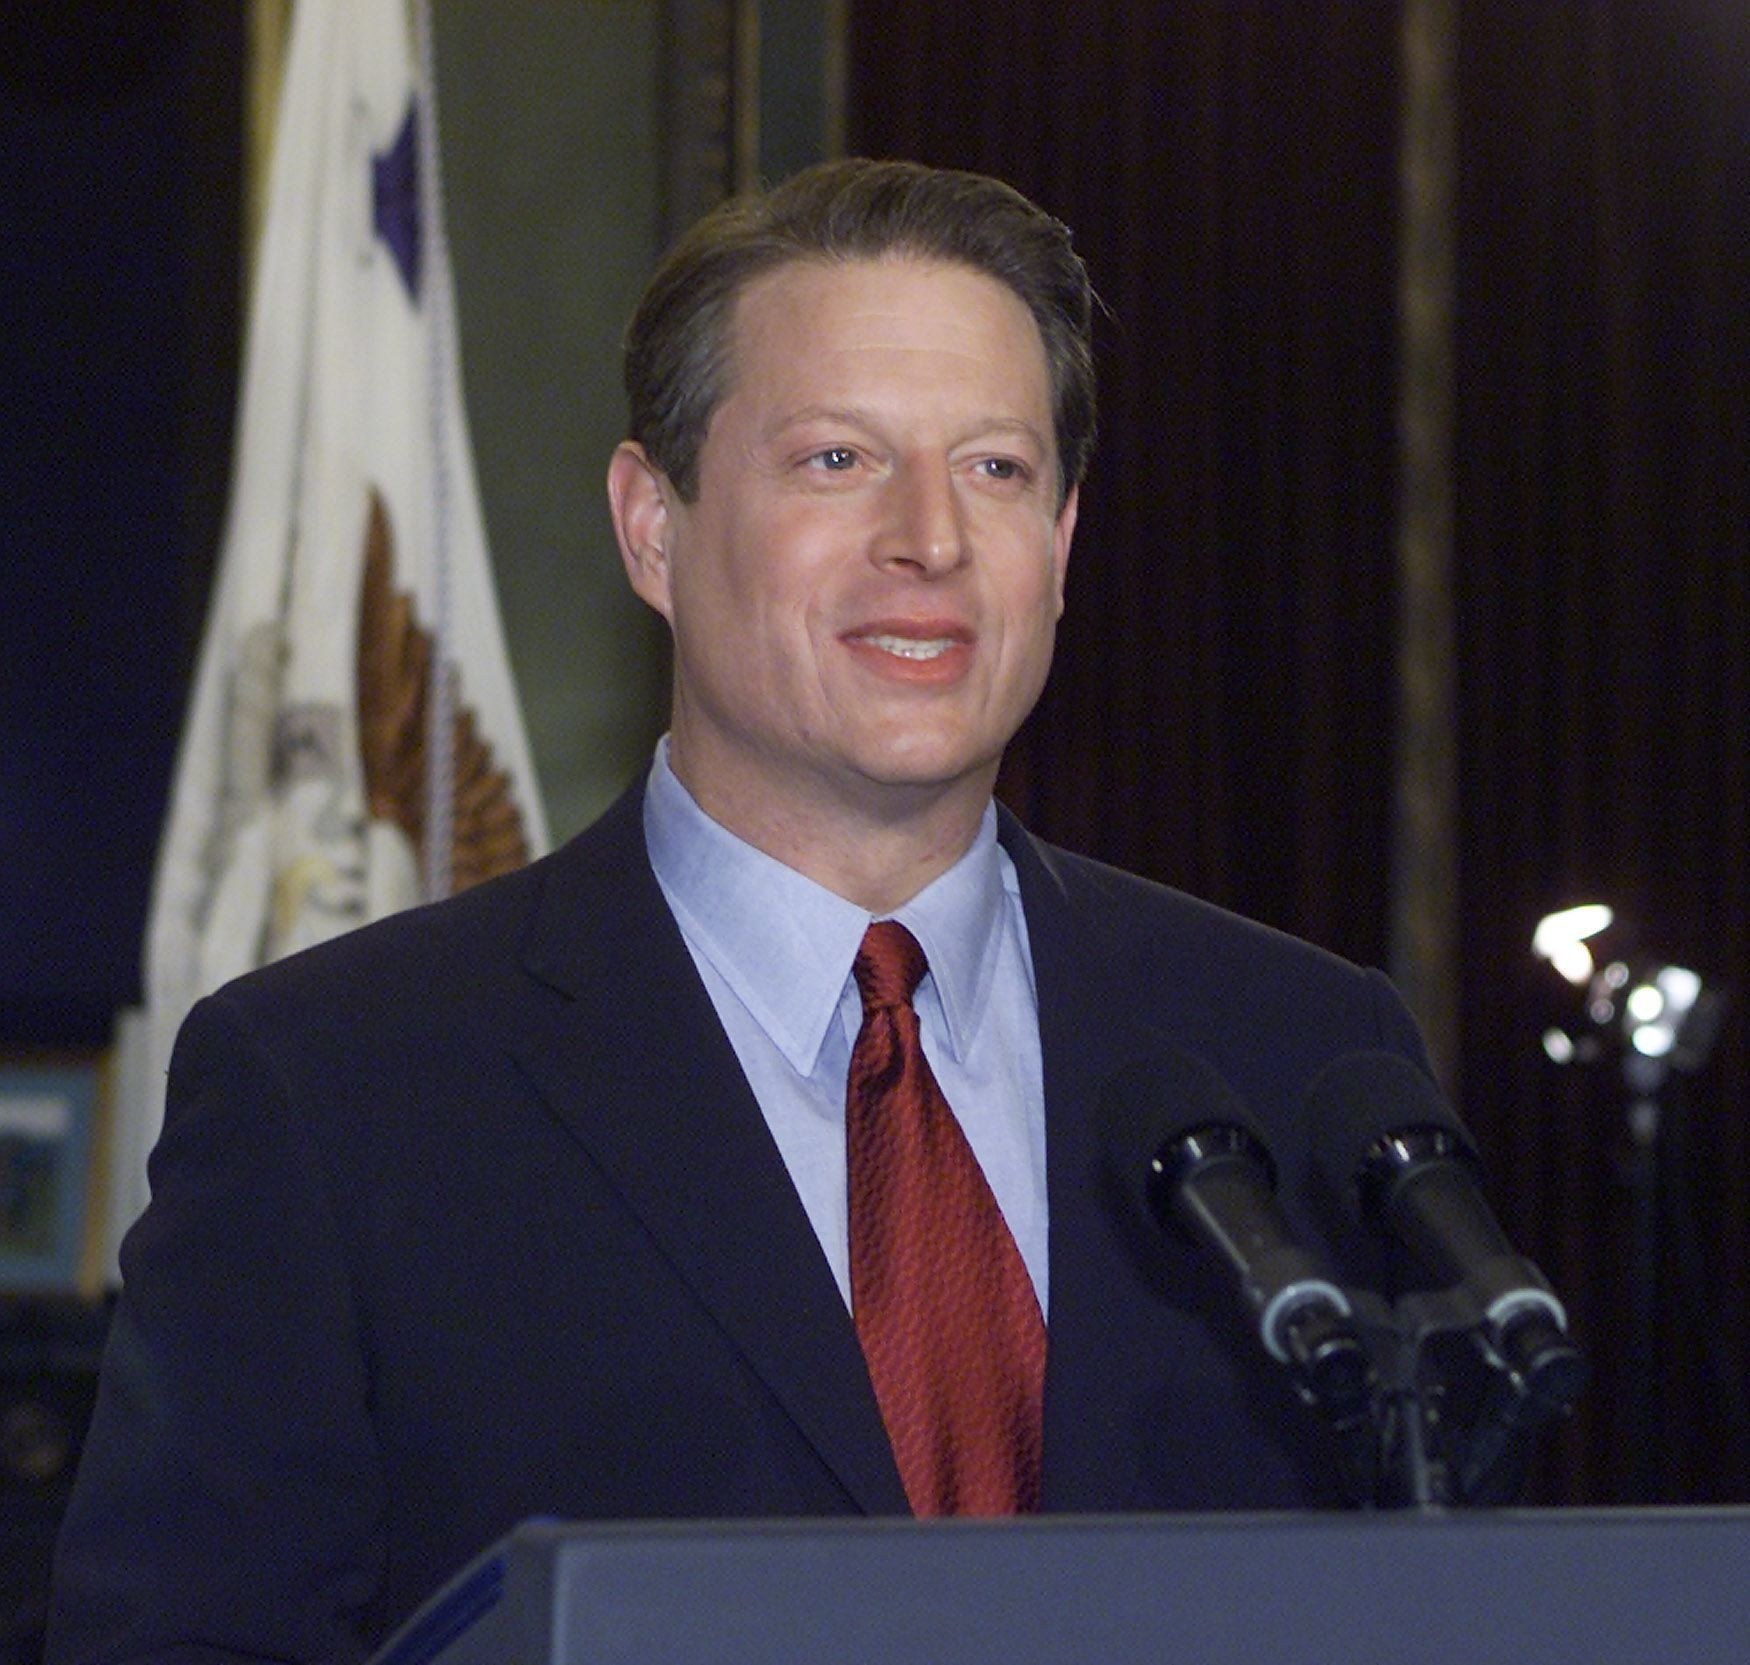 U.S. Vice President Al Gore poses for photographers following his concession speech 13 December, 2000 in his office in the Ol